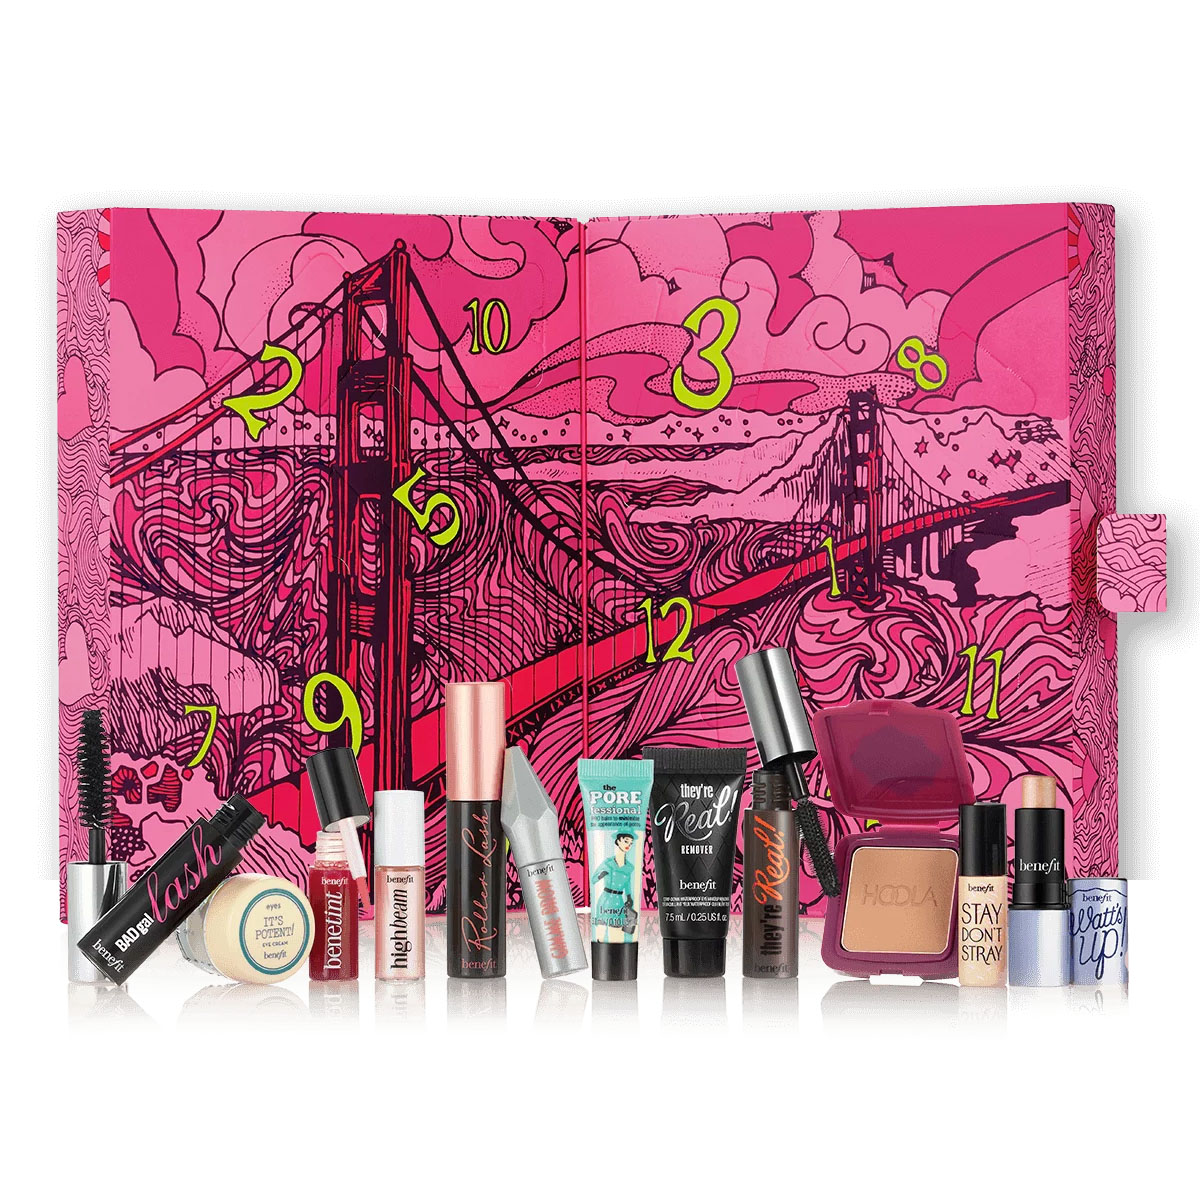 BENEFIT Adventskalender 2017